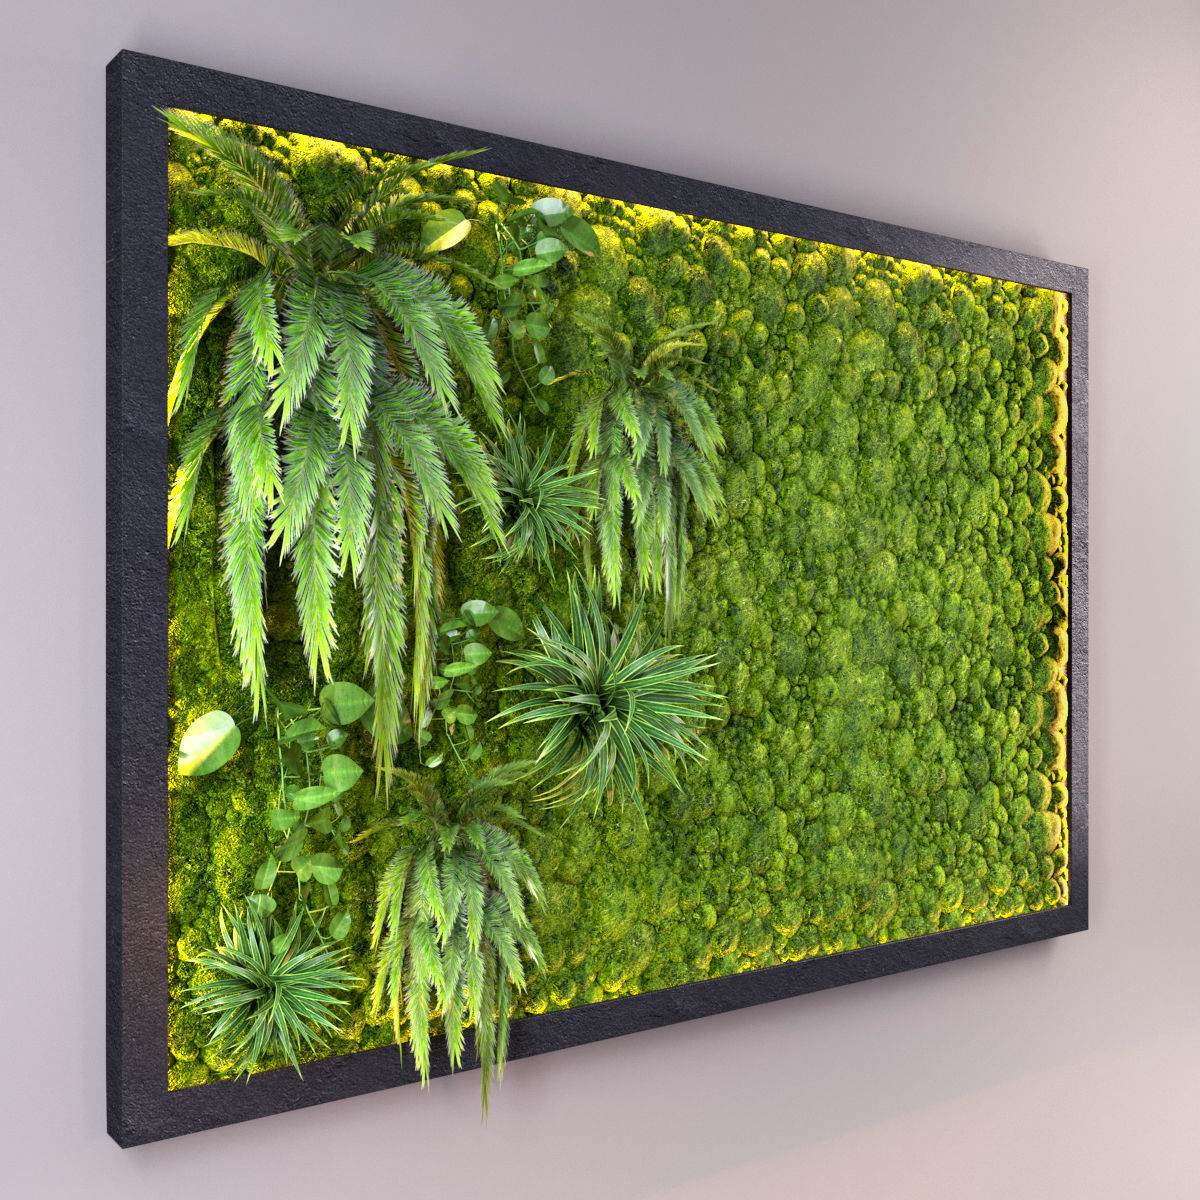 3d Fito Wall With Moss Cgtrader Green Ecer Model Max Obj Mtl Fbx 1